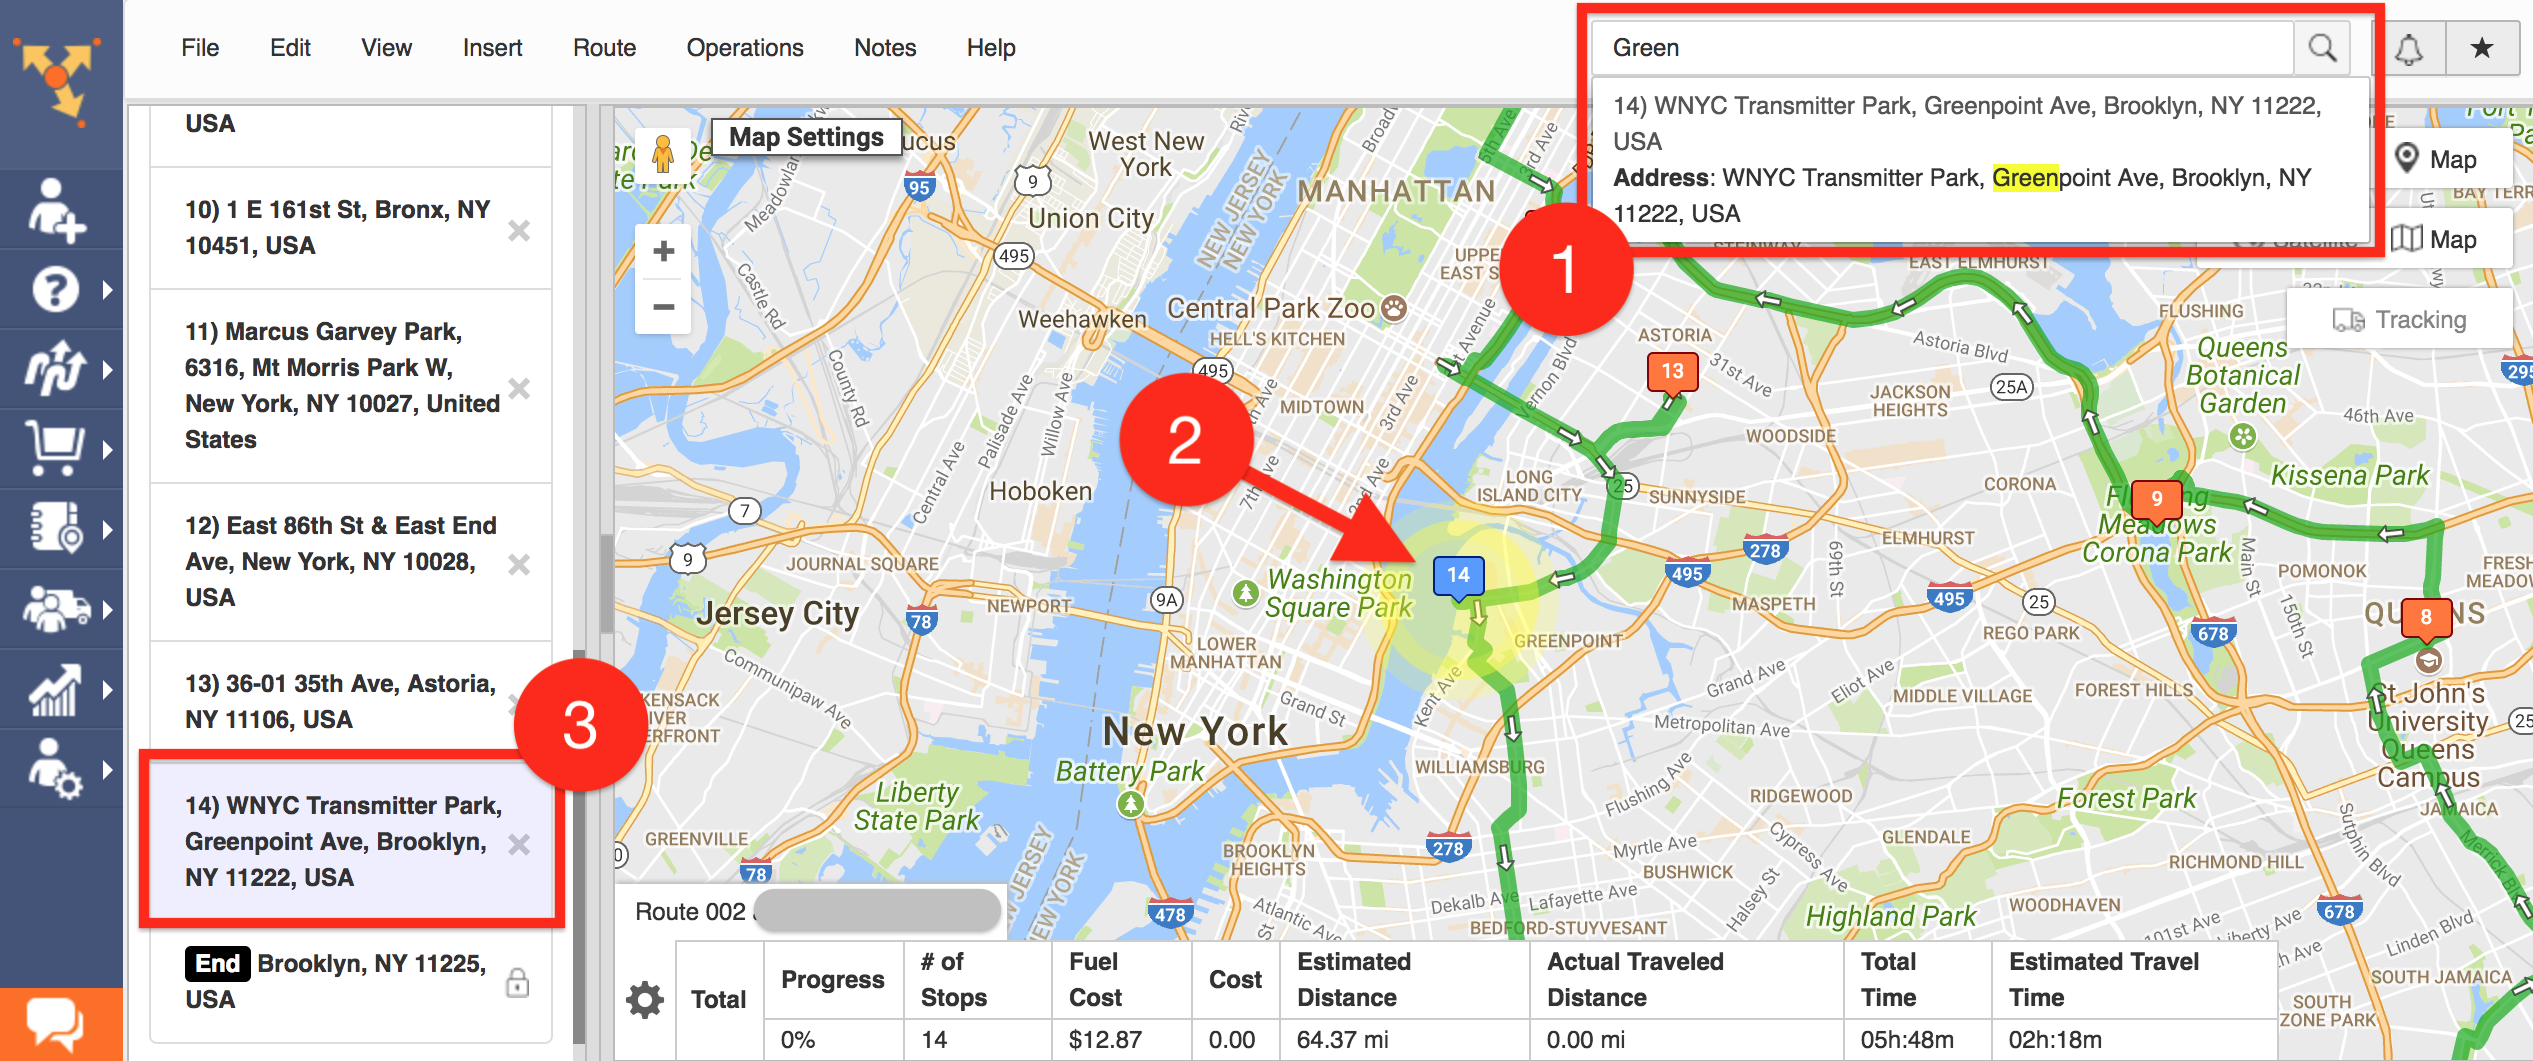 Search inside an individual route using Route4Me's real-time search engine